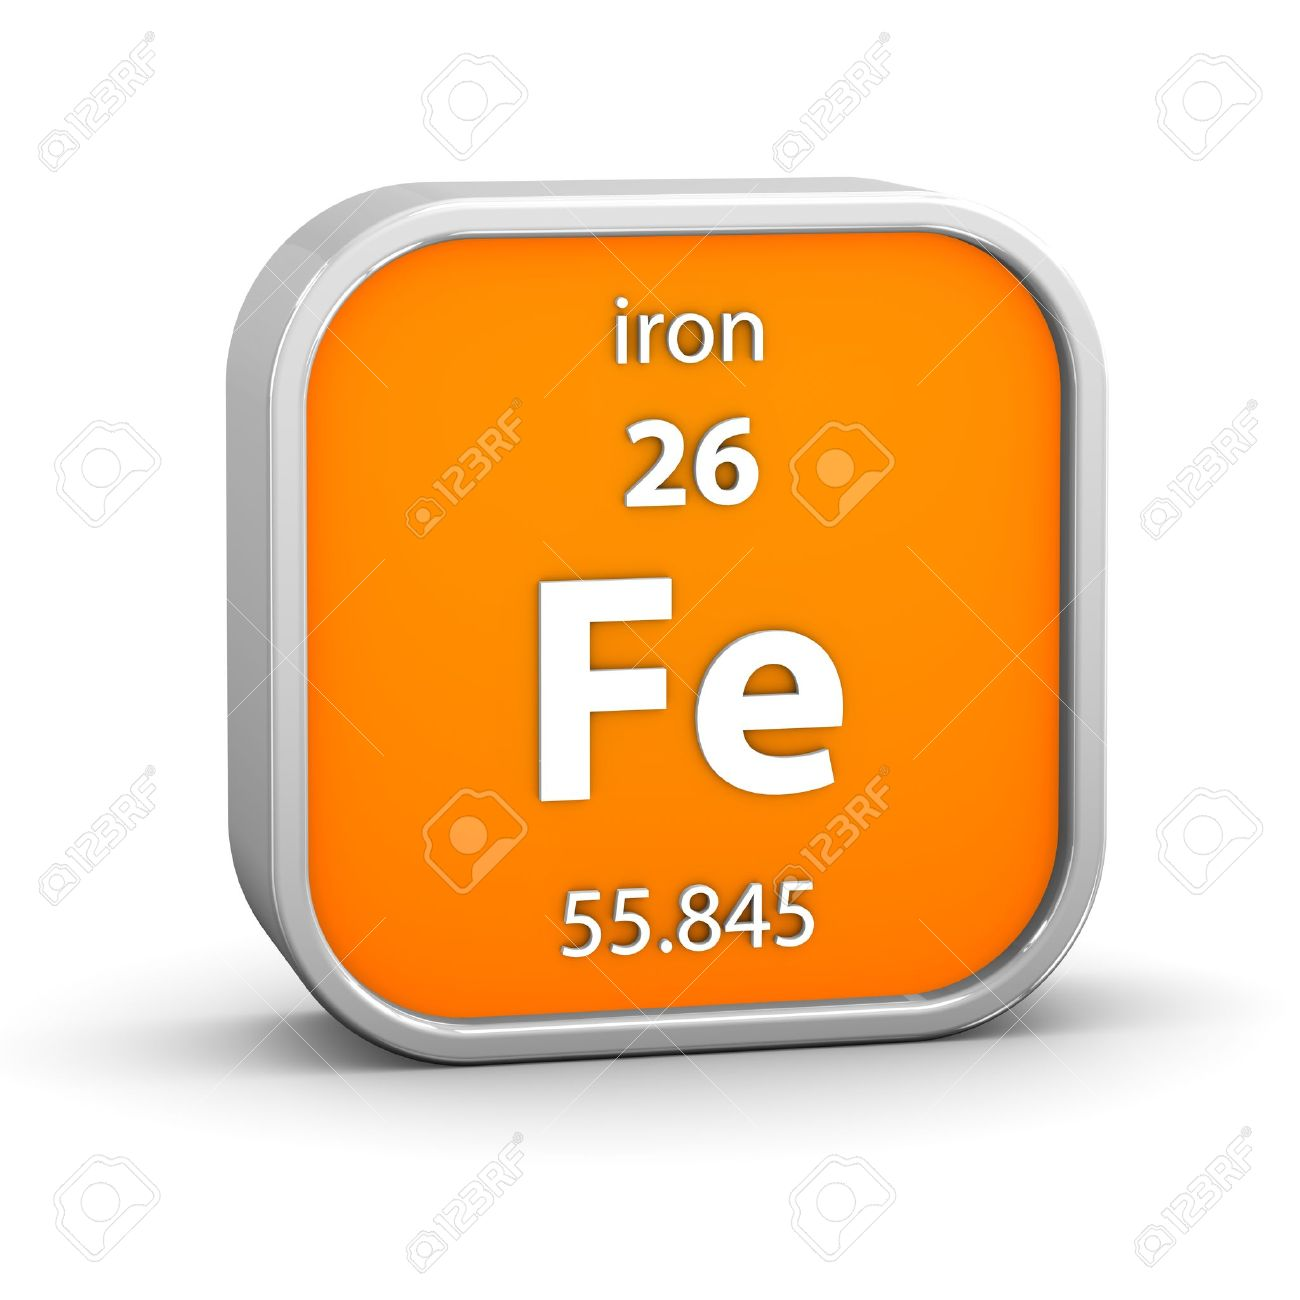 Iron material on the periodic table part of a series stock photo iron material on the periodic table part of a series stock photo 18441857 gamestrikefo Image collections